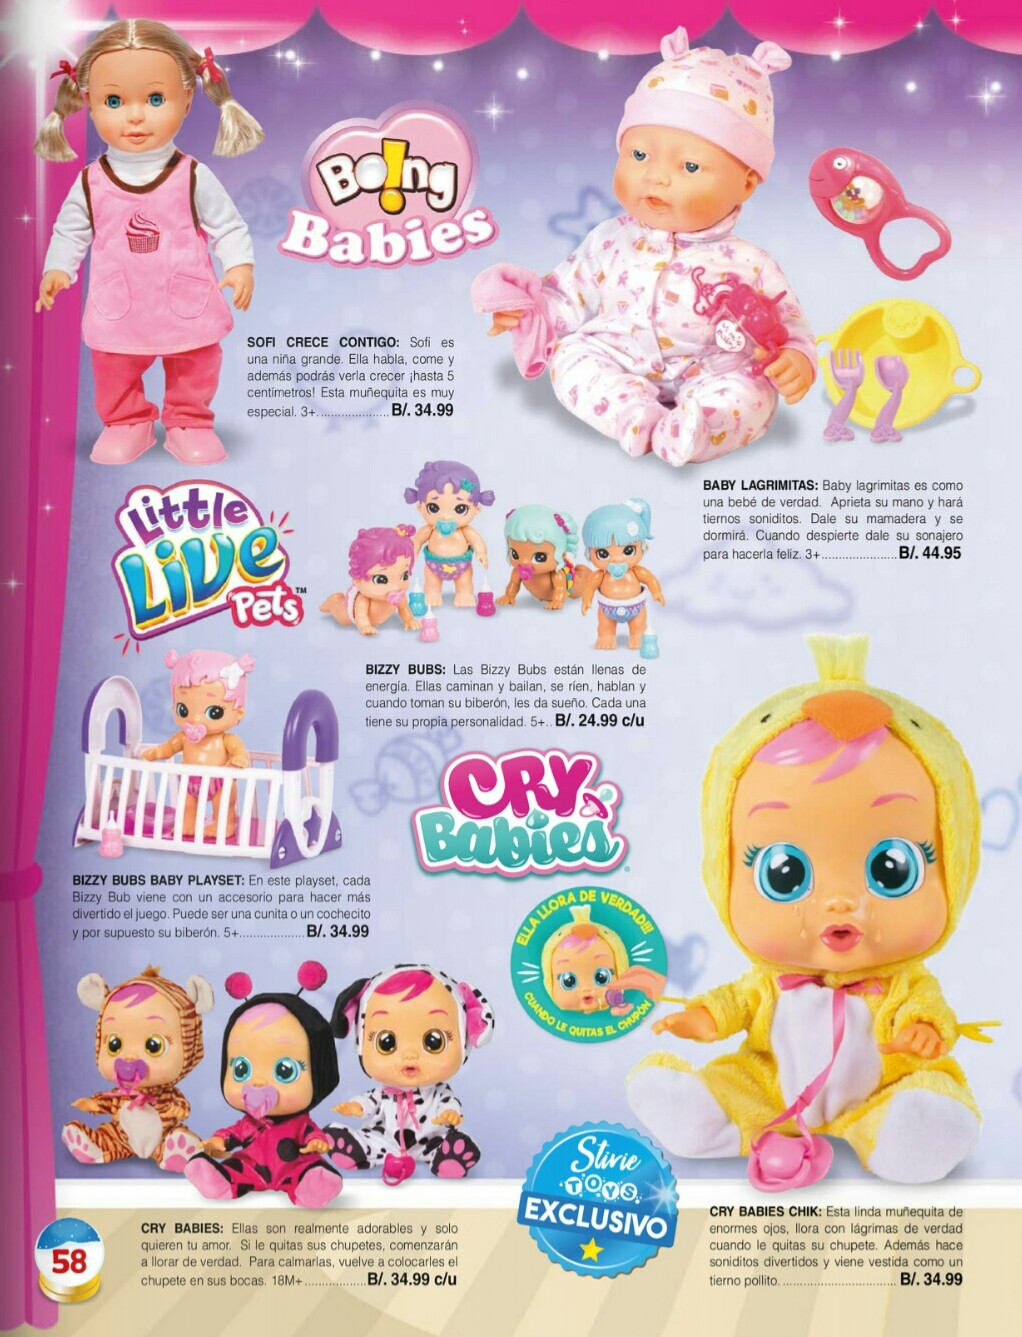 Catalogo juguetes Stivie toys 2018 p58